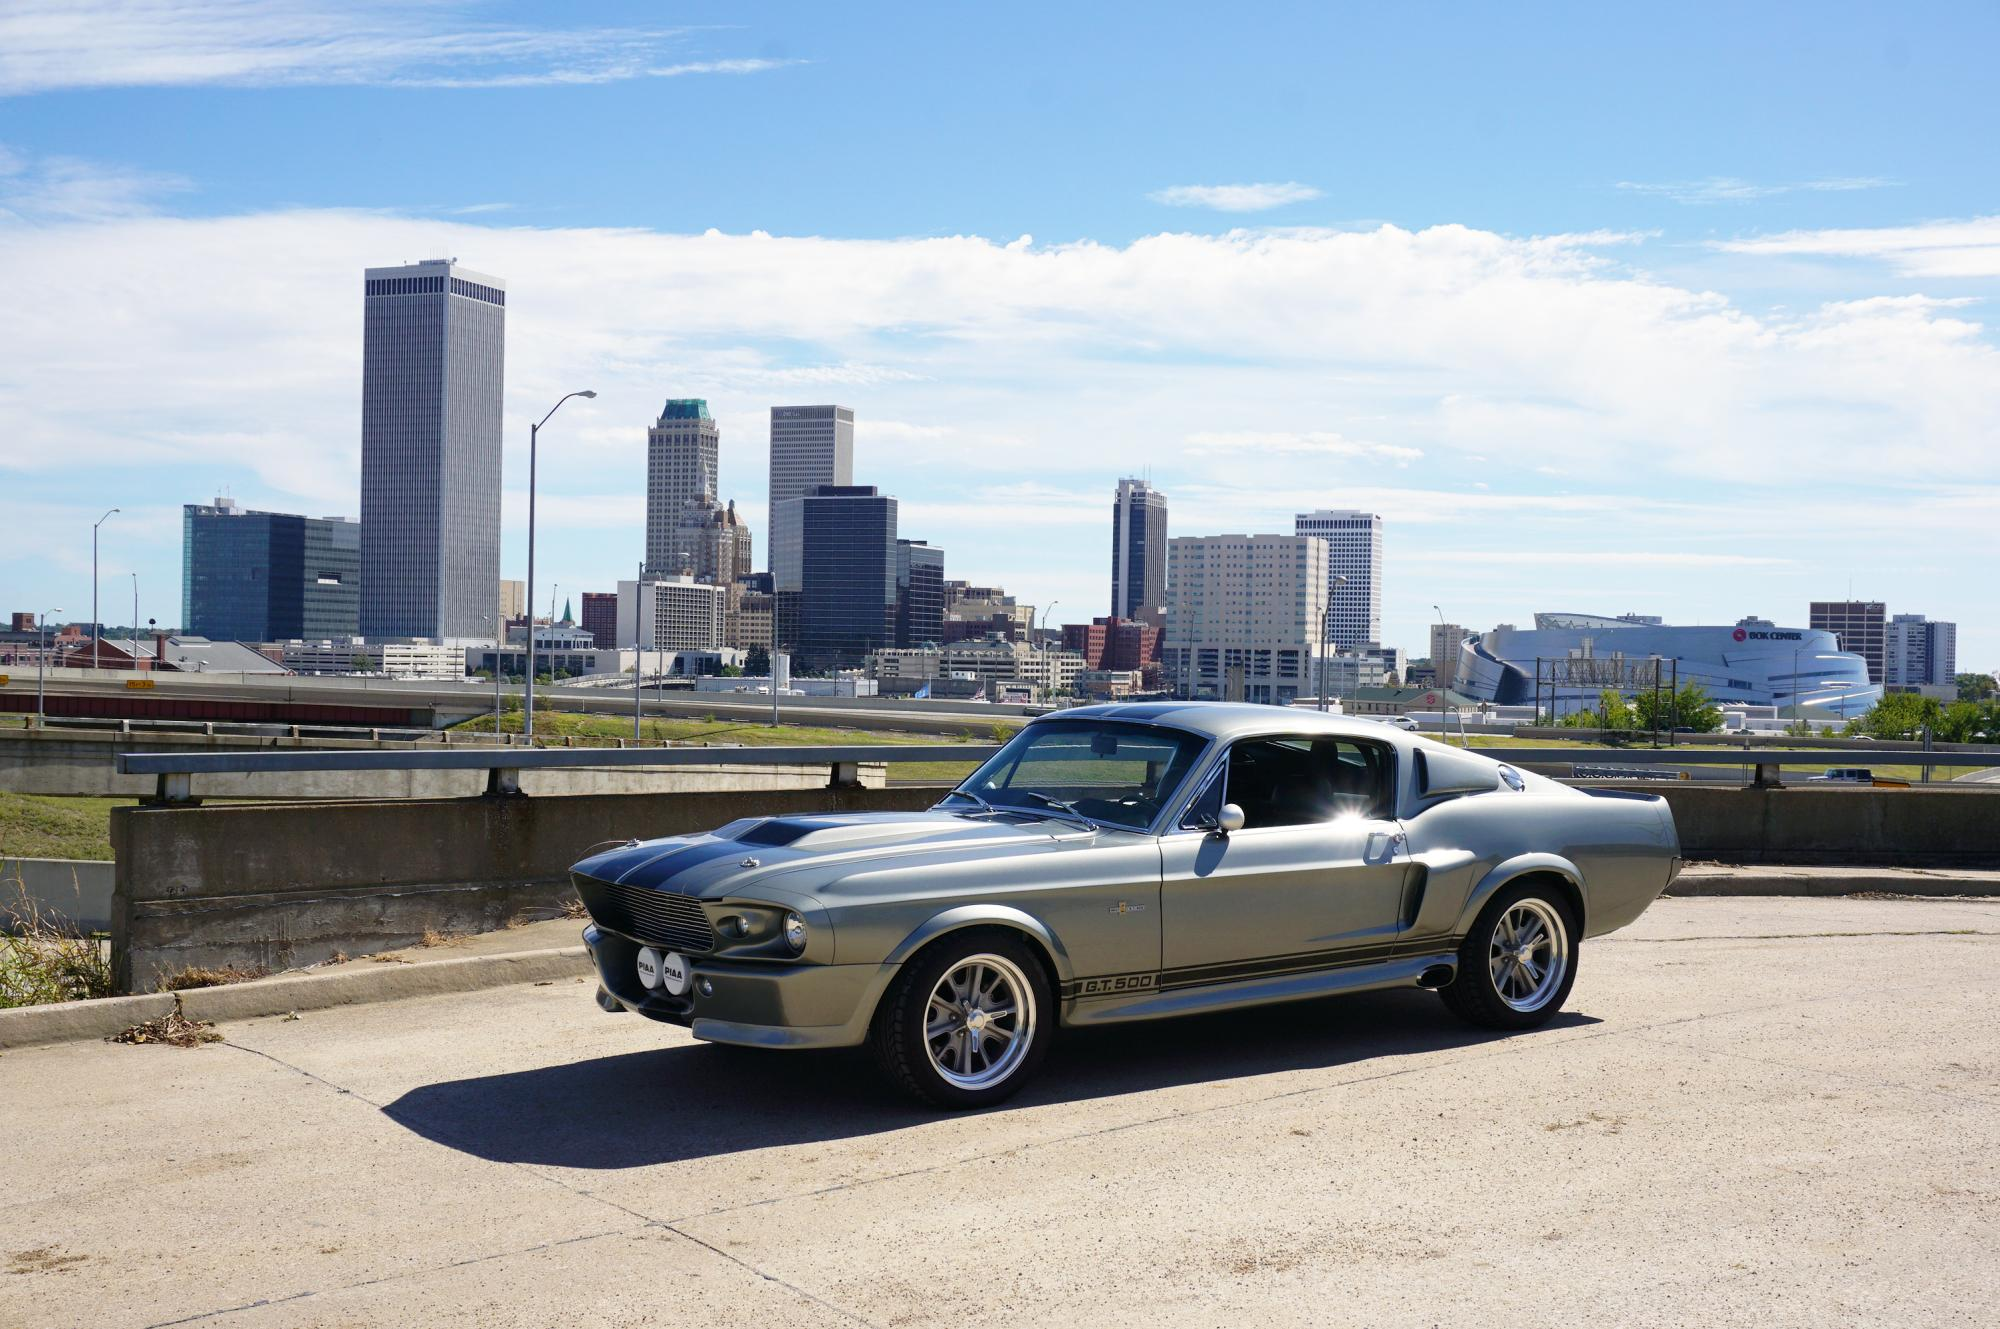 Quality Brand New Muscle Car Eleanor Mustang Replicas Builder